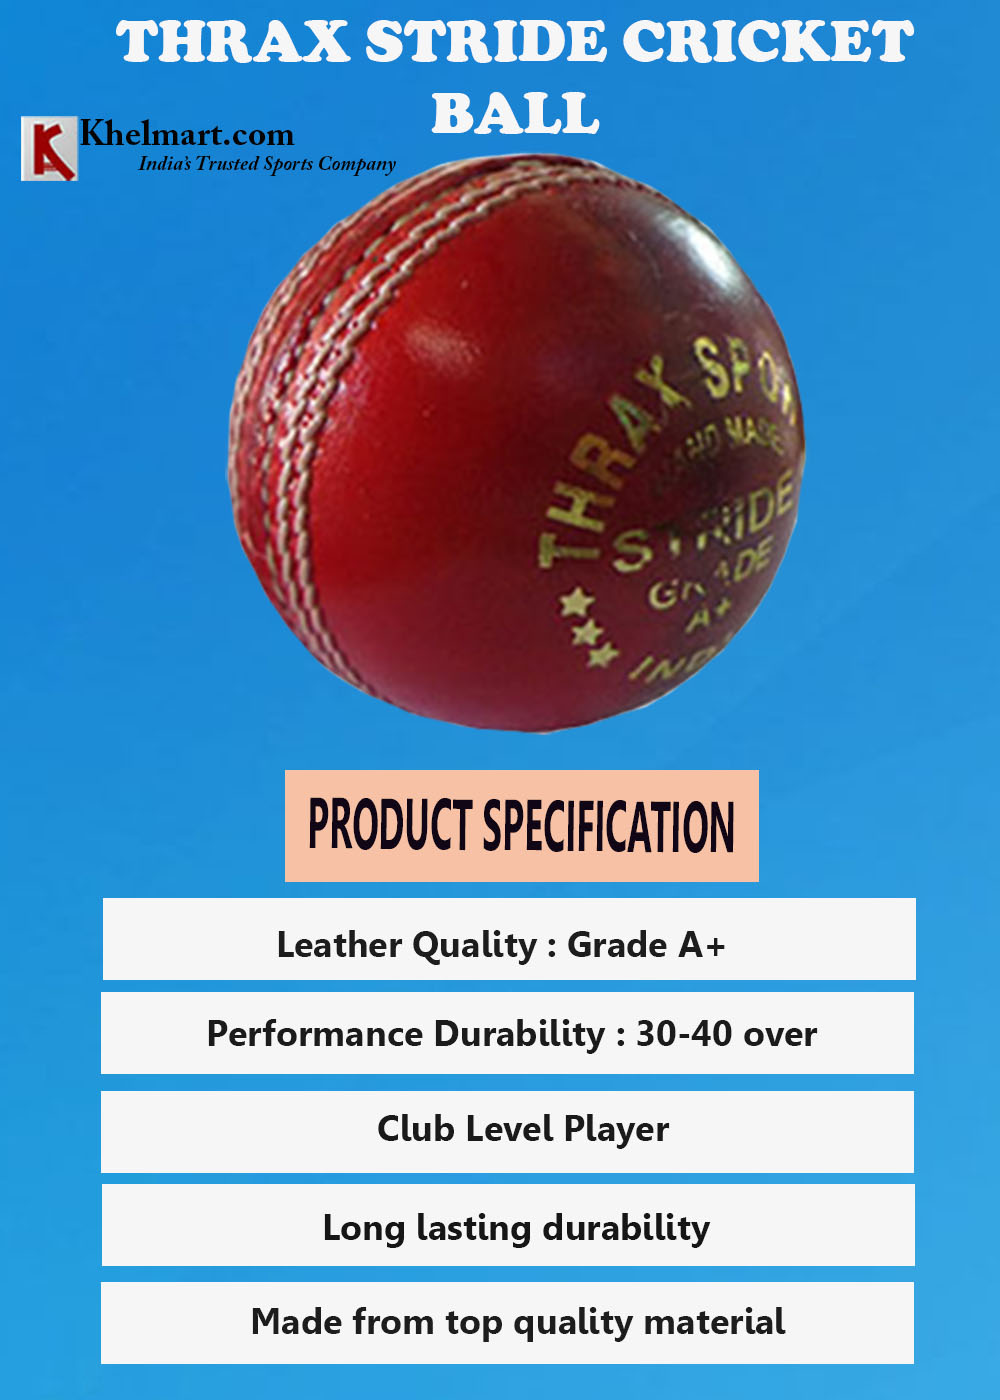 Thrax Stride Cricket Ball